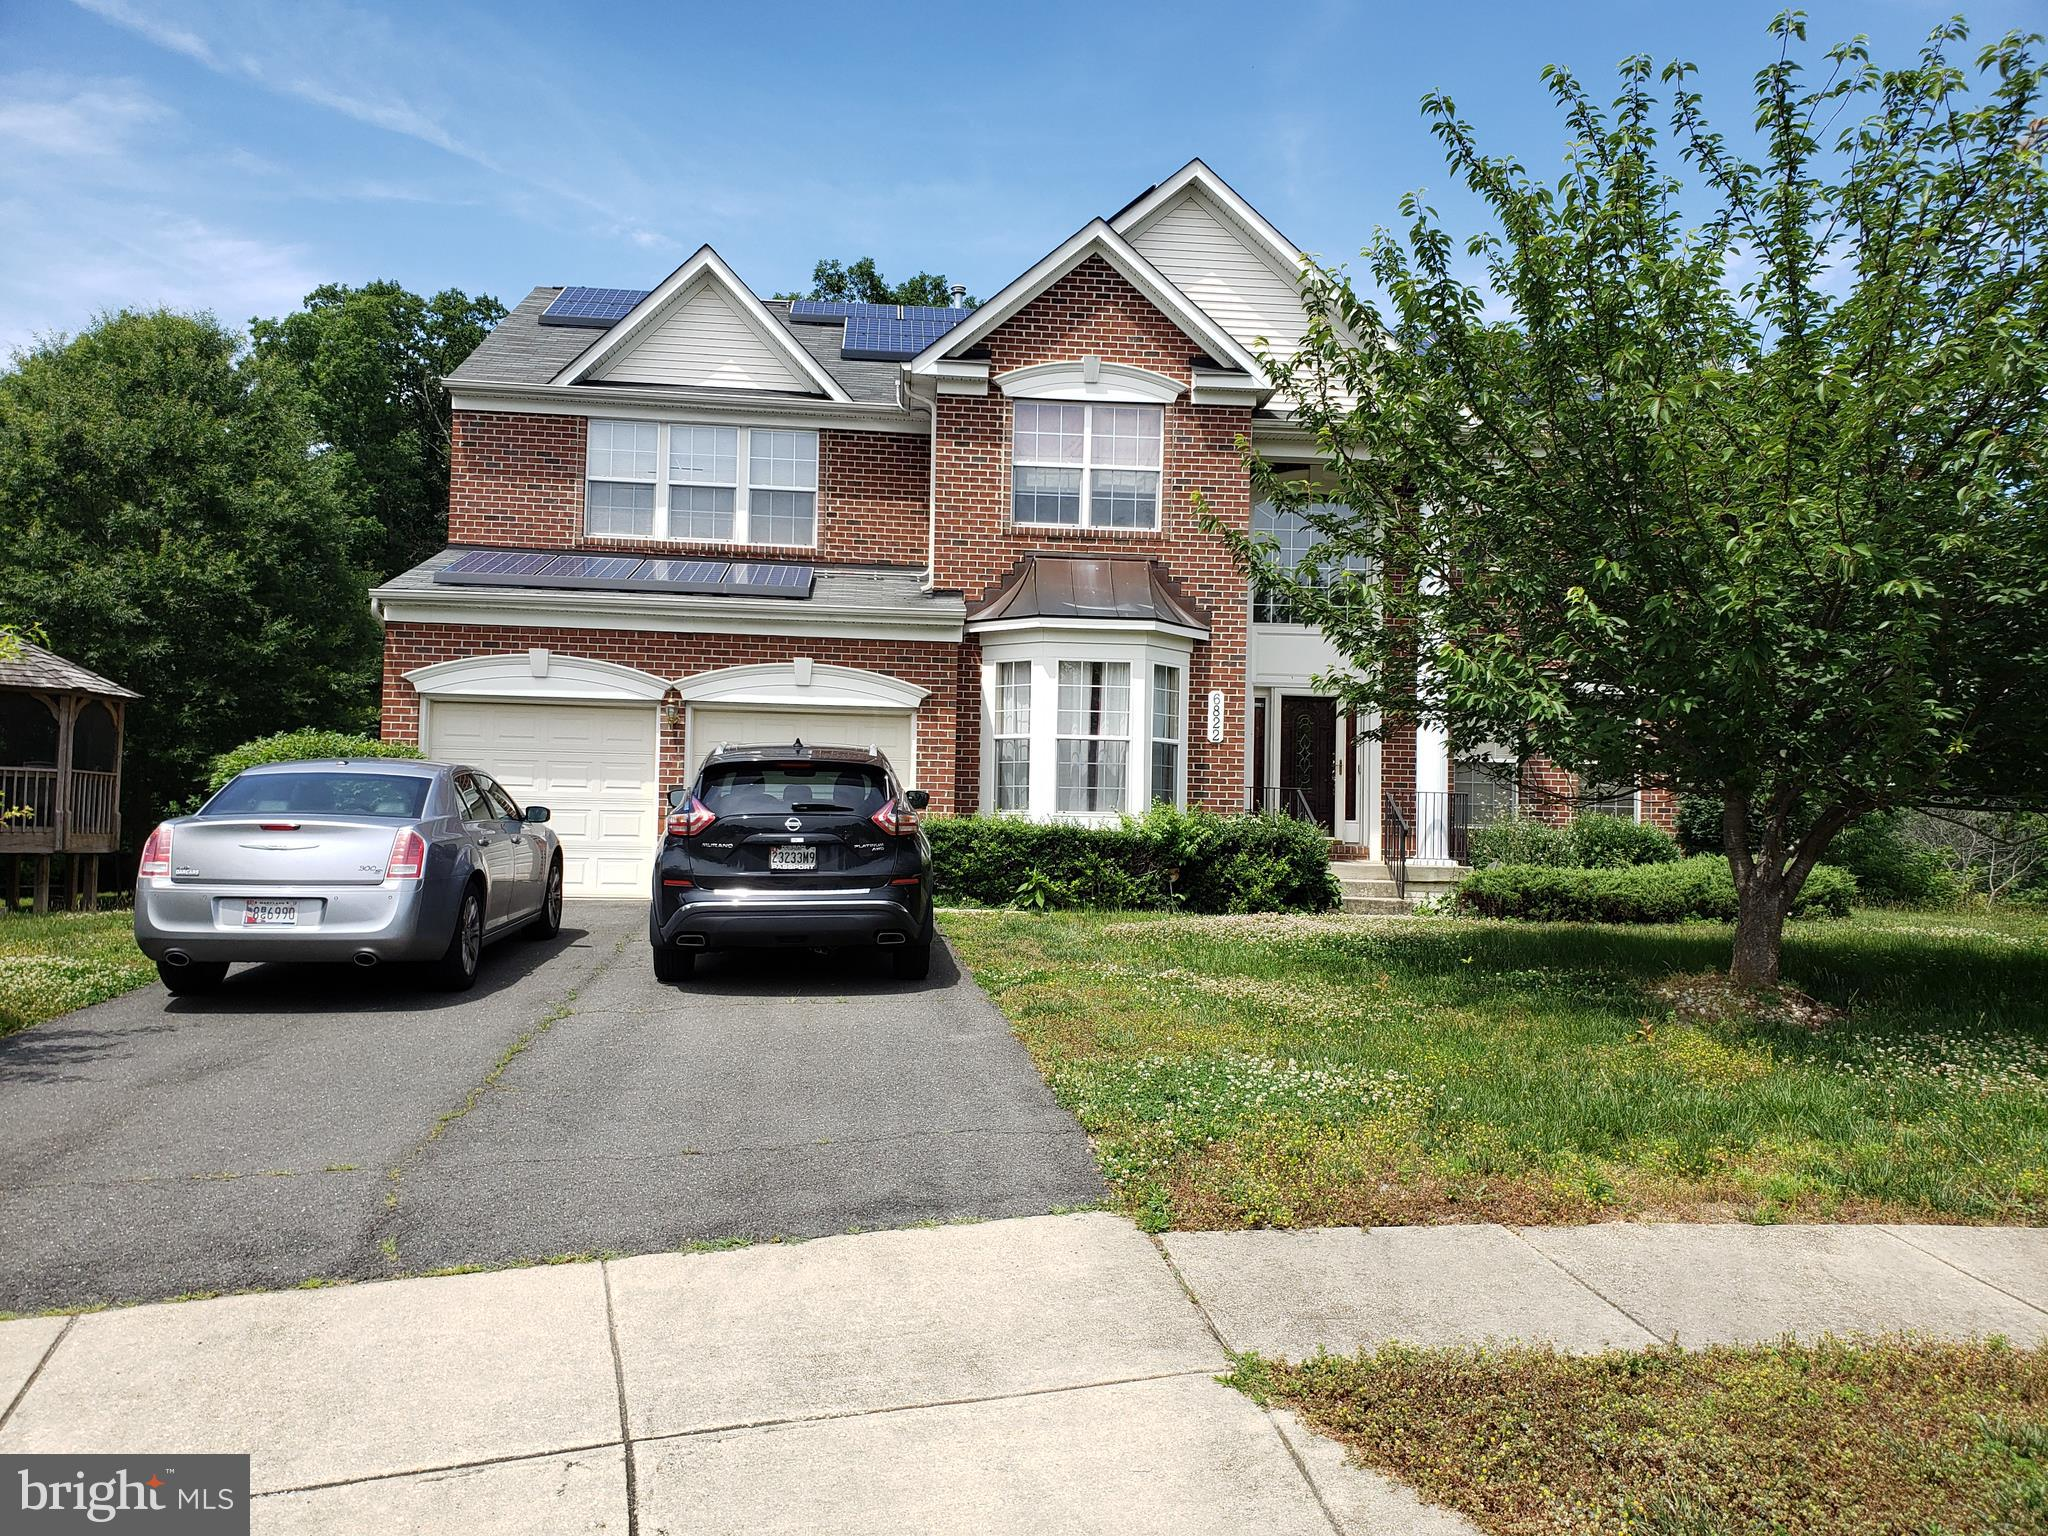 6822 ASHLEYS CROSSING COURT, TEMPLE HILLS, MD 20748